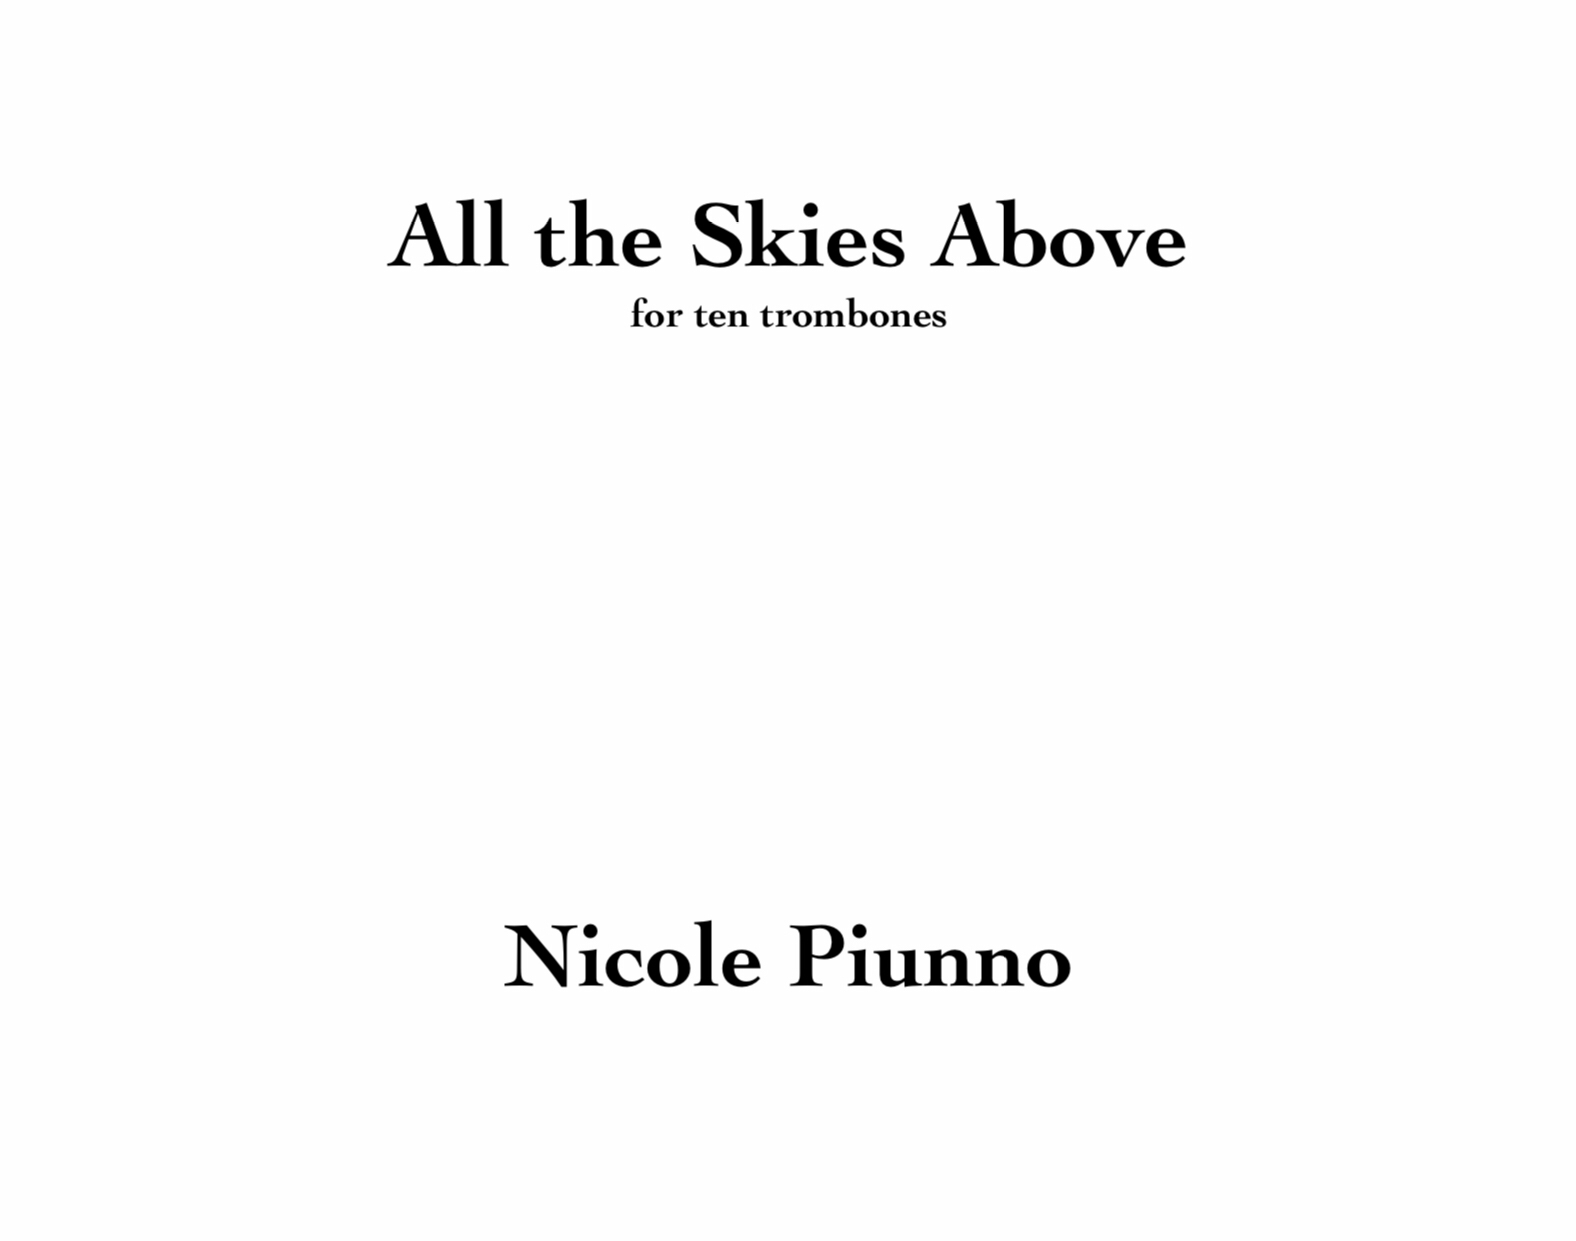 All The Skies Aboove by Nicole Piunno